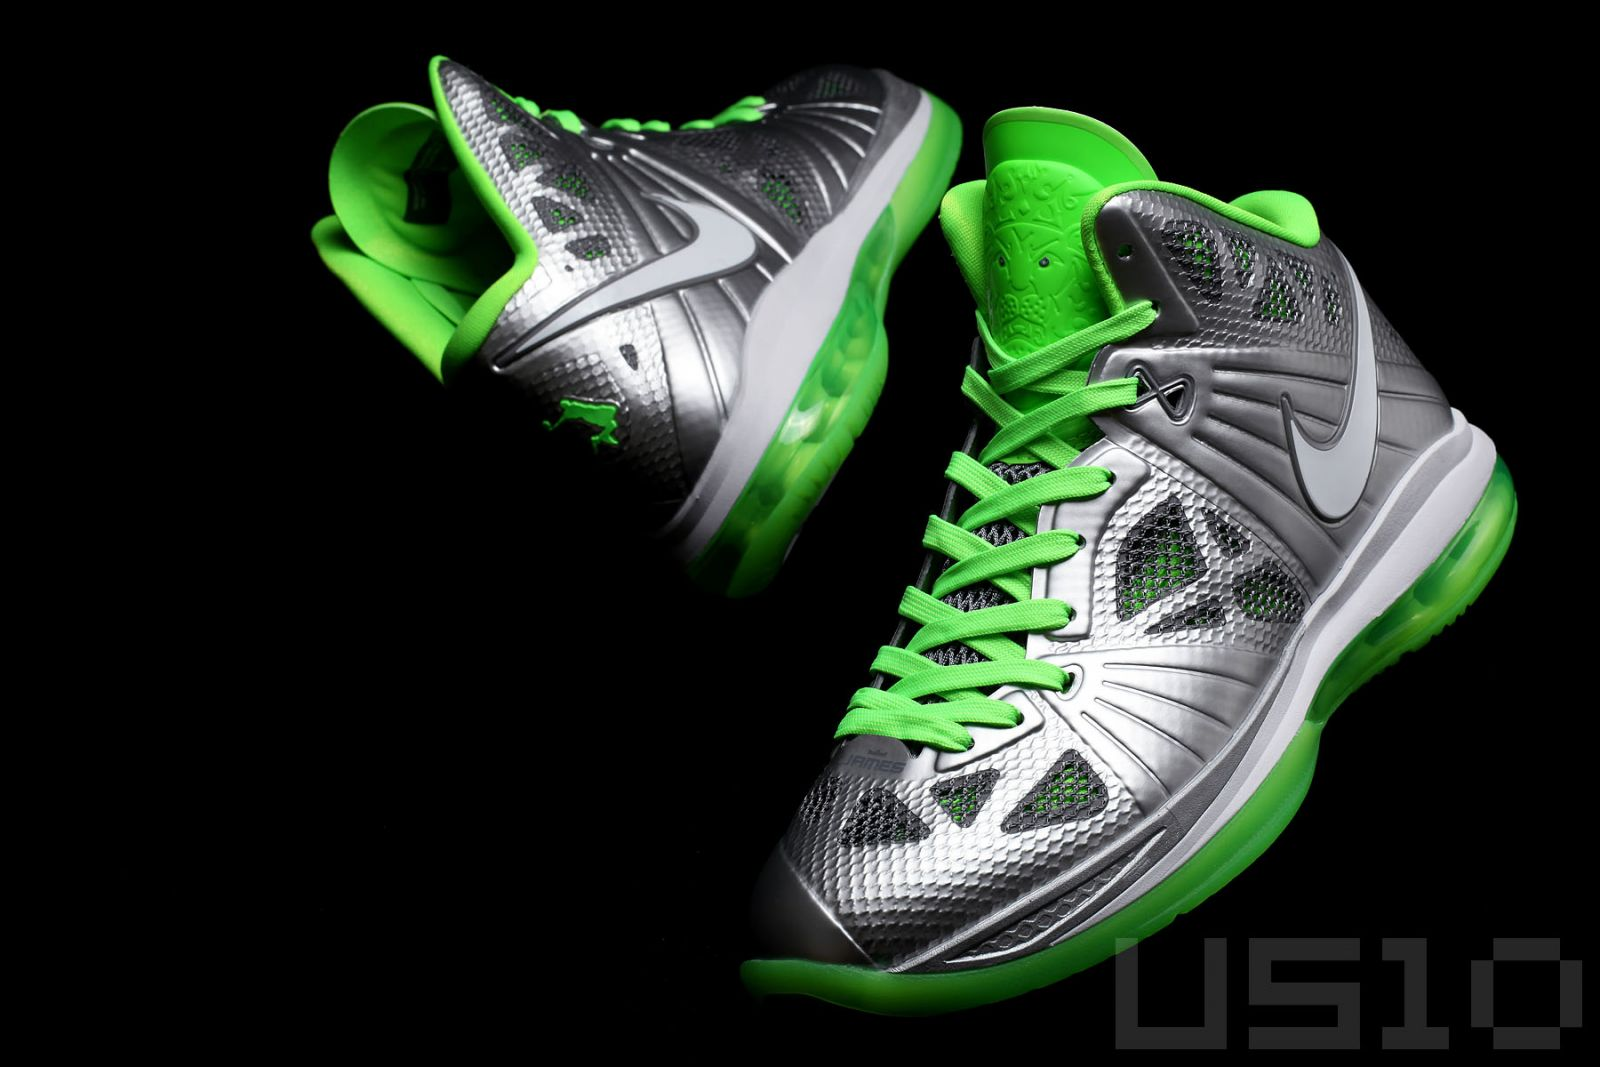 uk availability d8e27 ece28 The standard version of the LeBron 8 may not have released, but the Dunkman  colorway of the 8 P.S. was available to the public, with the logo seen  along the ...